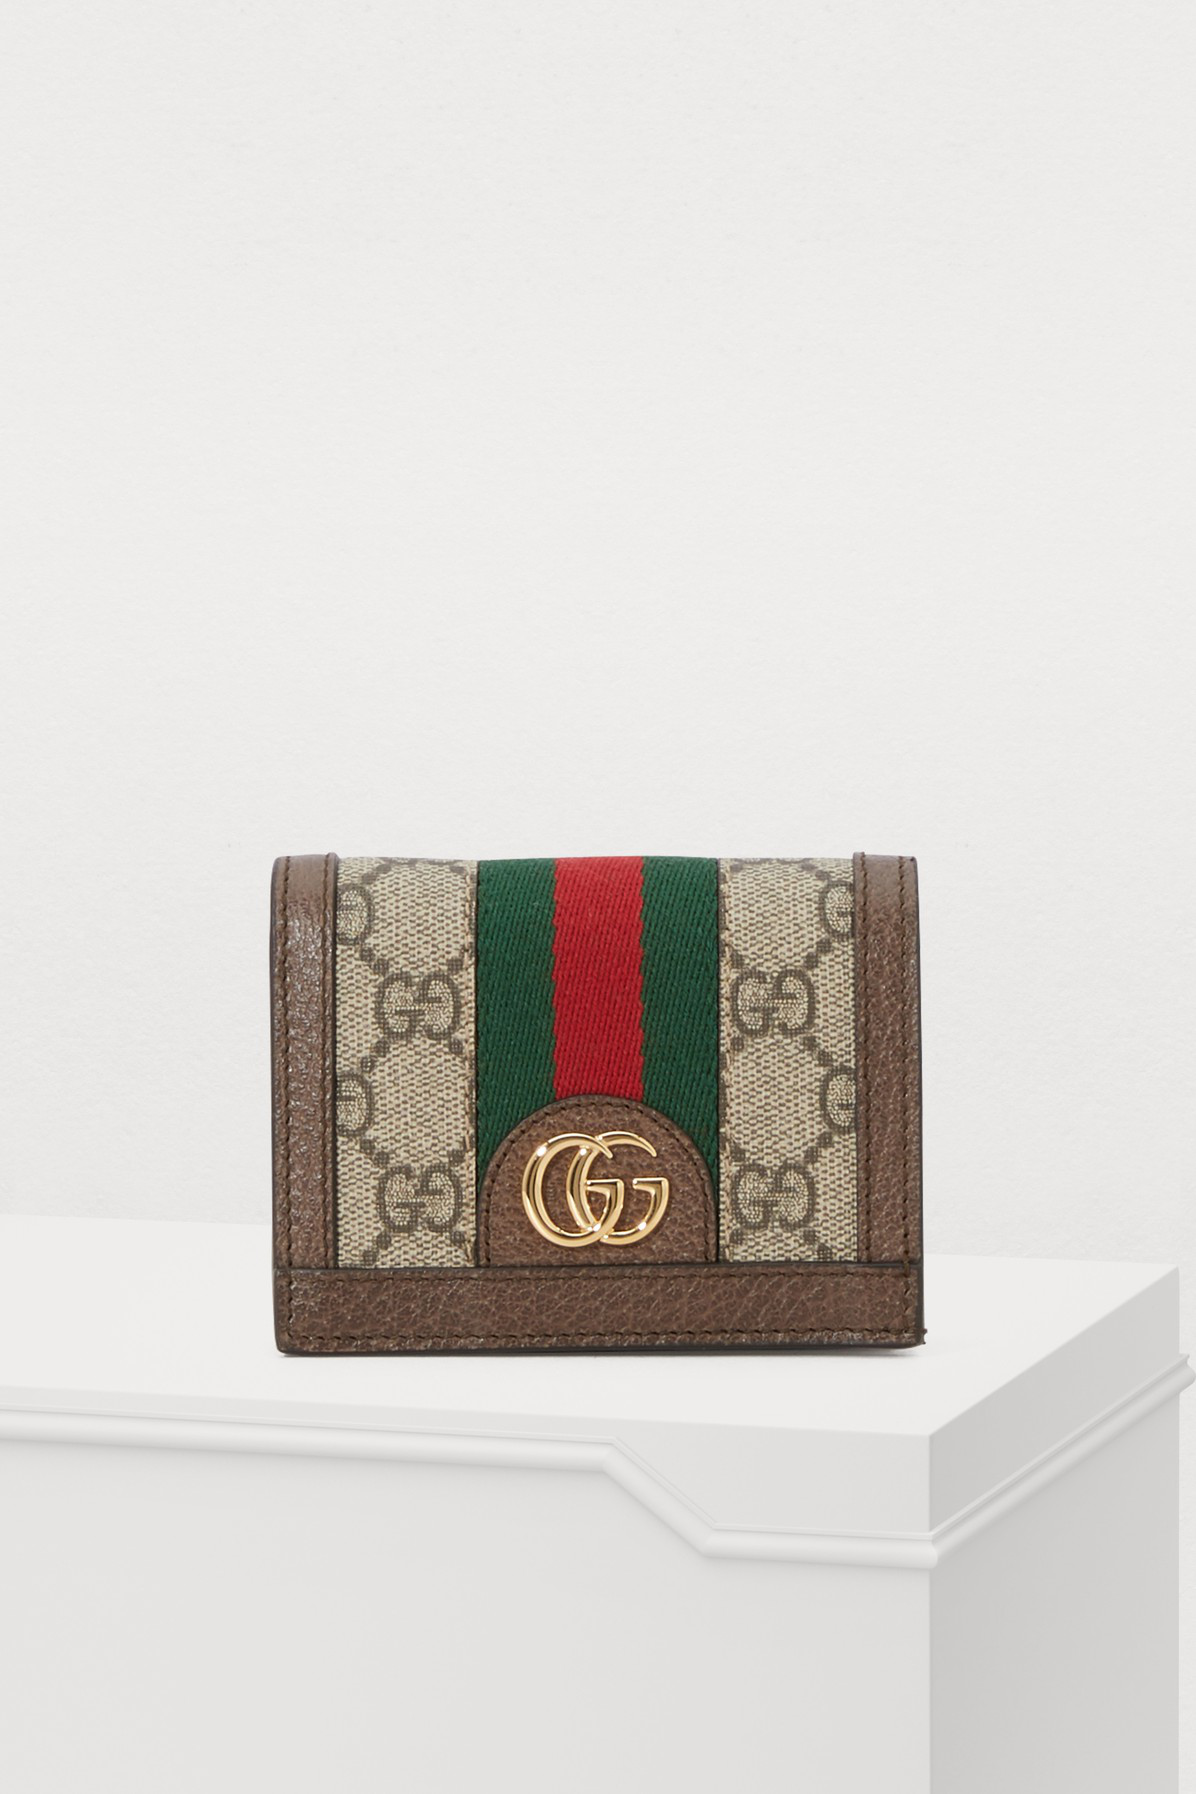 c4d3a50739e9 Gucci Ophidia Gg Supreme Leather Wallet In Neutrals | ModeSens